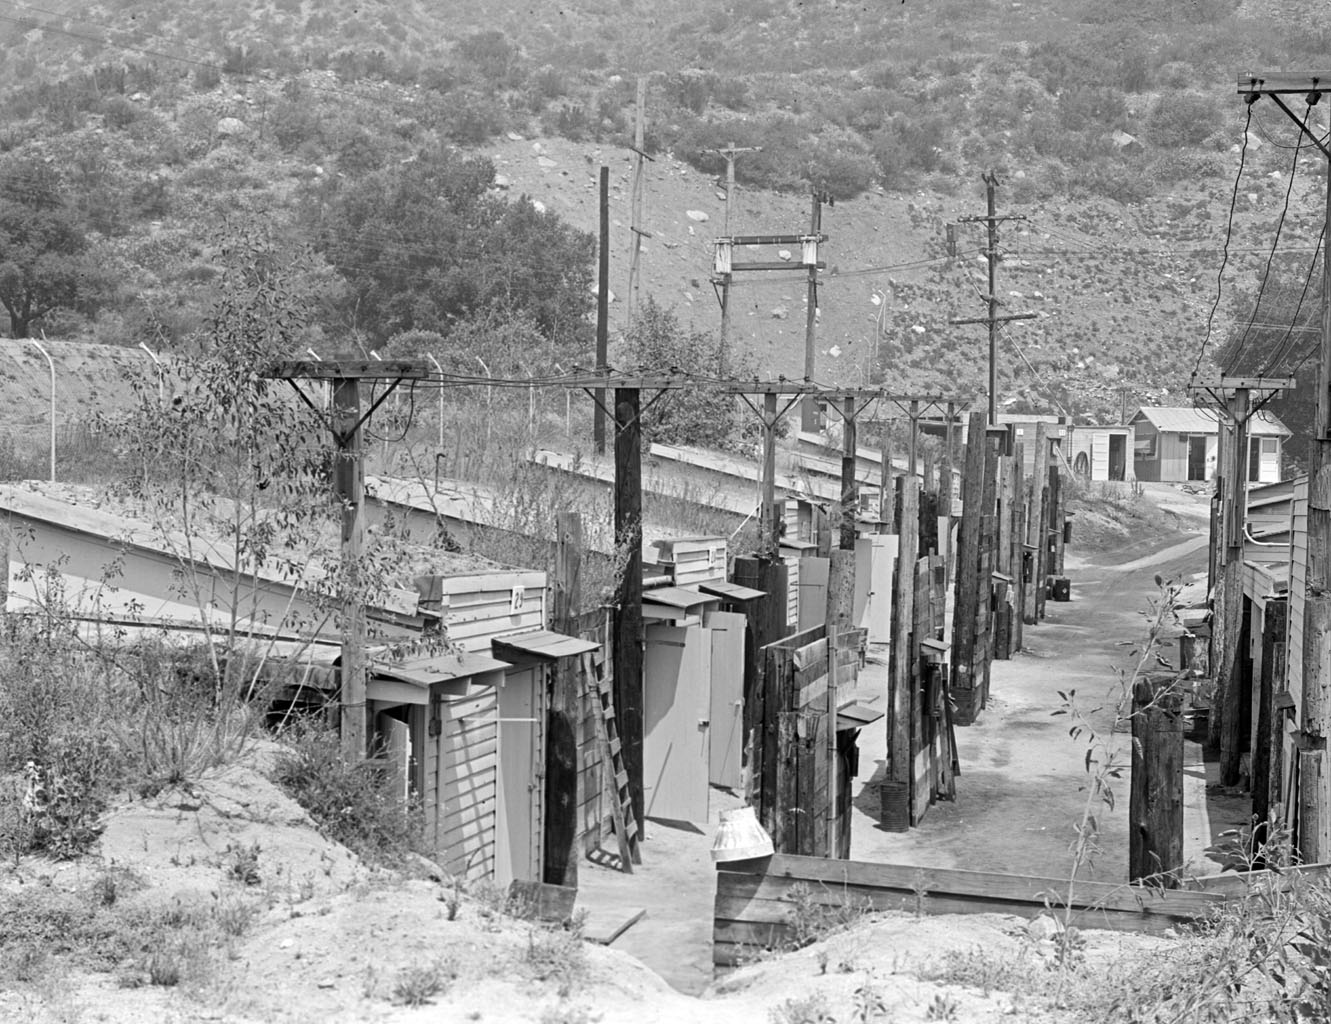 This archival picture, taken in August 1944, shows the northeast end of the Jet Propulsion Laboratory in Pasadena, Calif. This was near the Arroyo Seco, a dry canyon wash at the base of the San Gabriel Mountains.